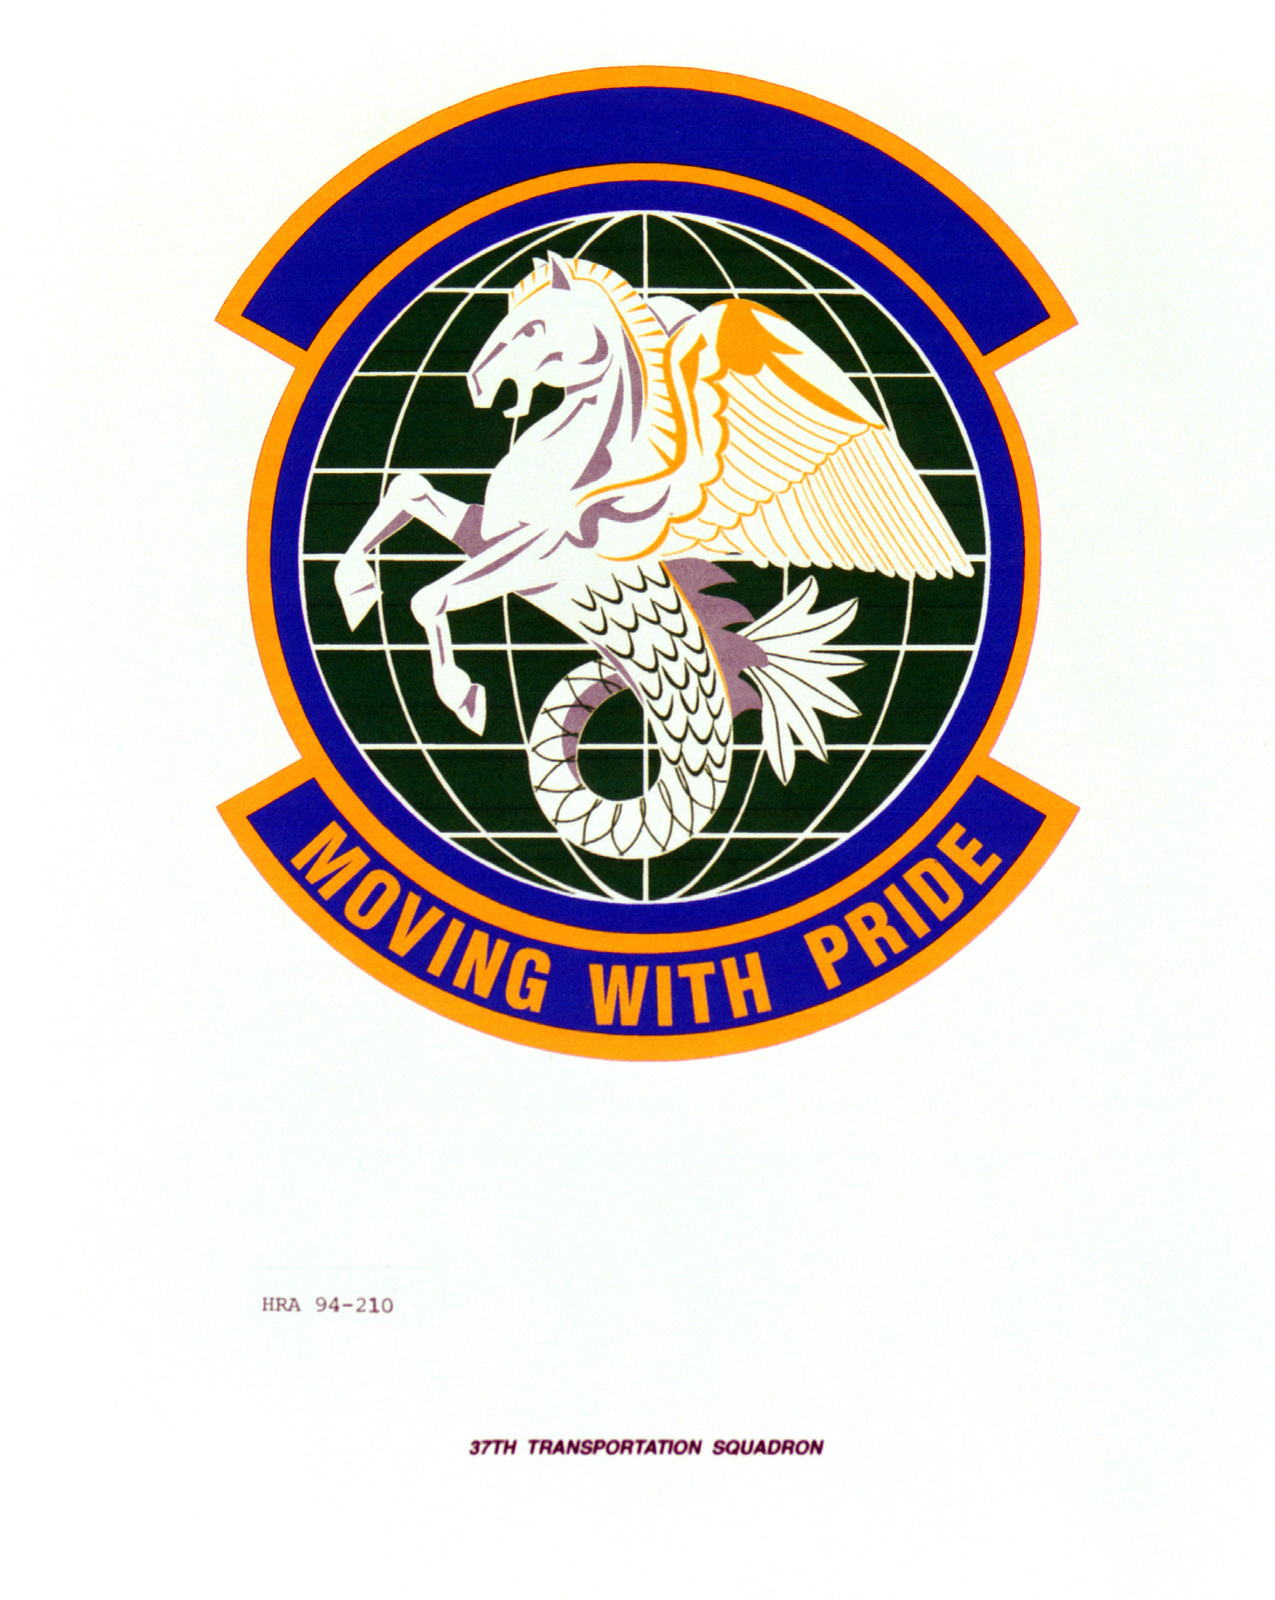 Approved Insignia of the 37th Transportation Squadron